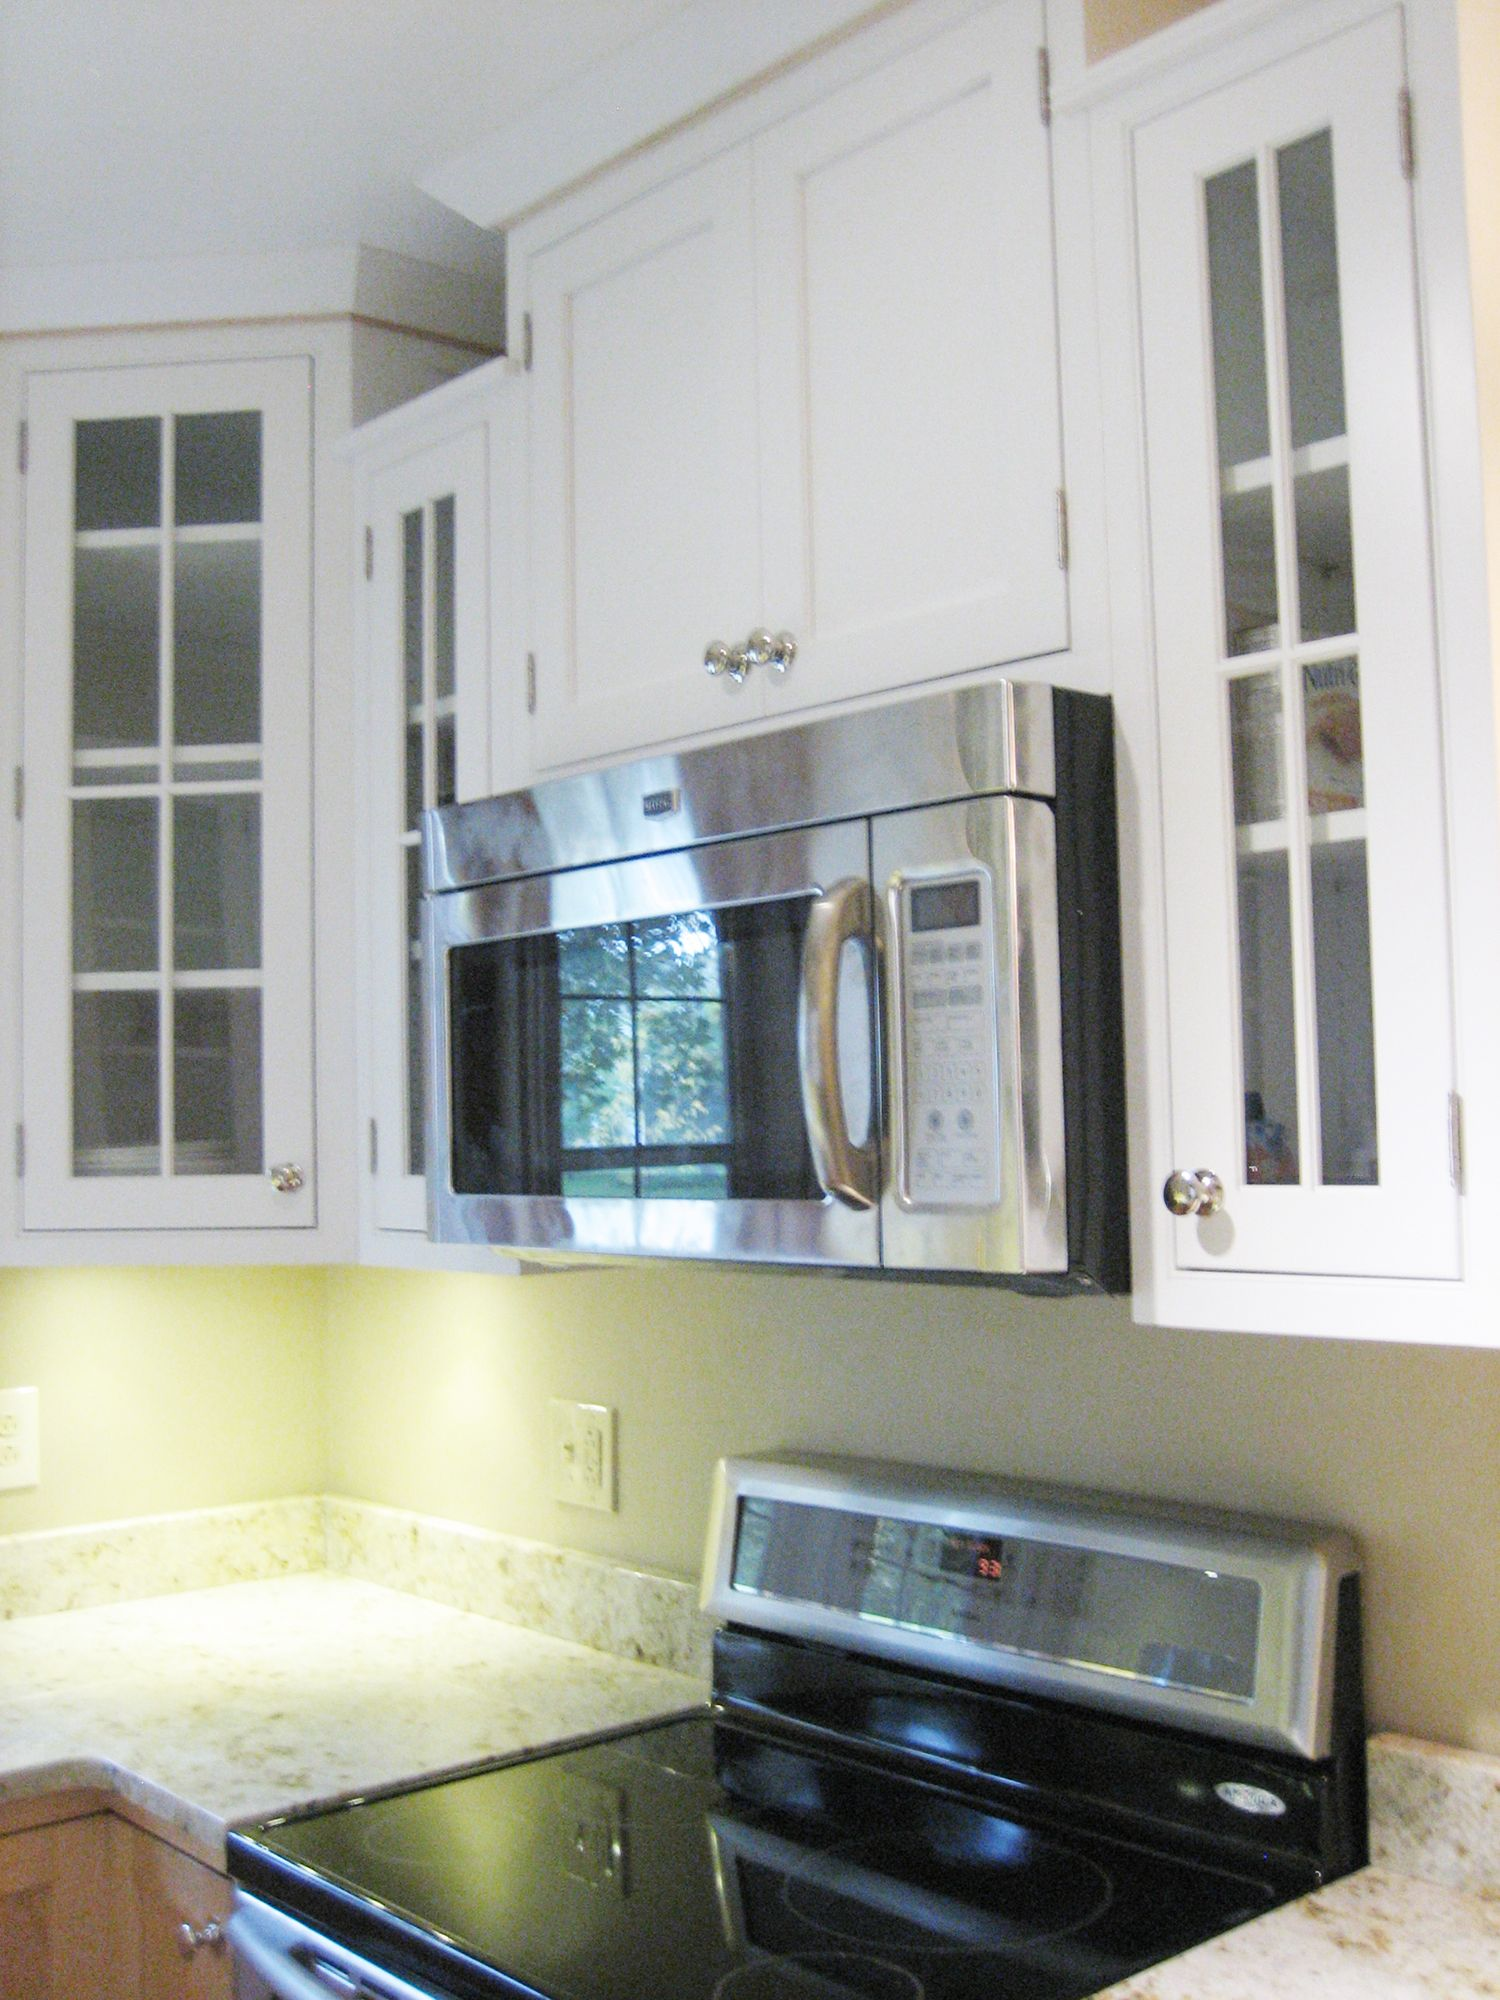 In This Madison Wisconsin Kitchen Remodel Designer Jenny Schuchardt Of Marling Homeworks Successfully Uses Light Wood Cabinets Kitchen Remodel Upper Cabinets